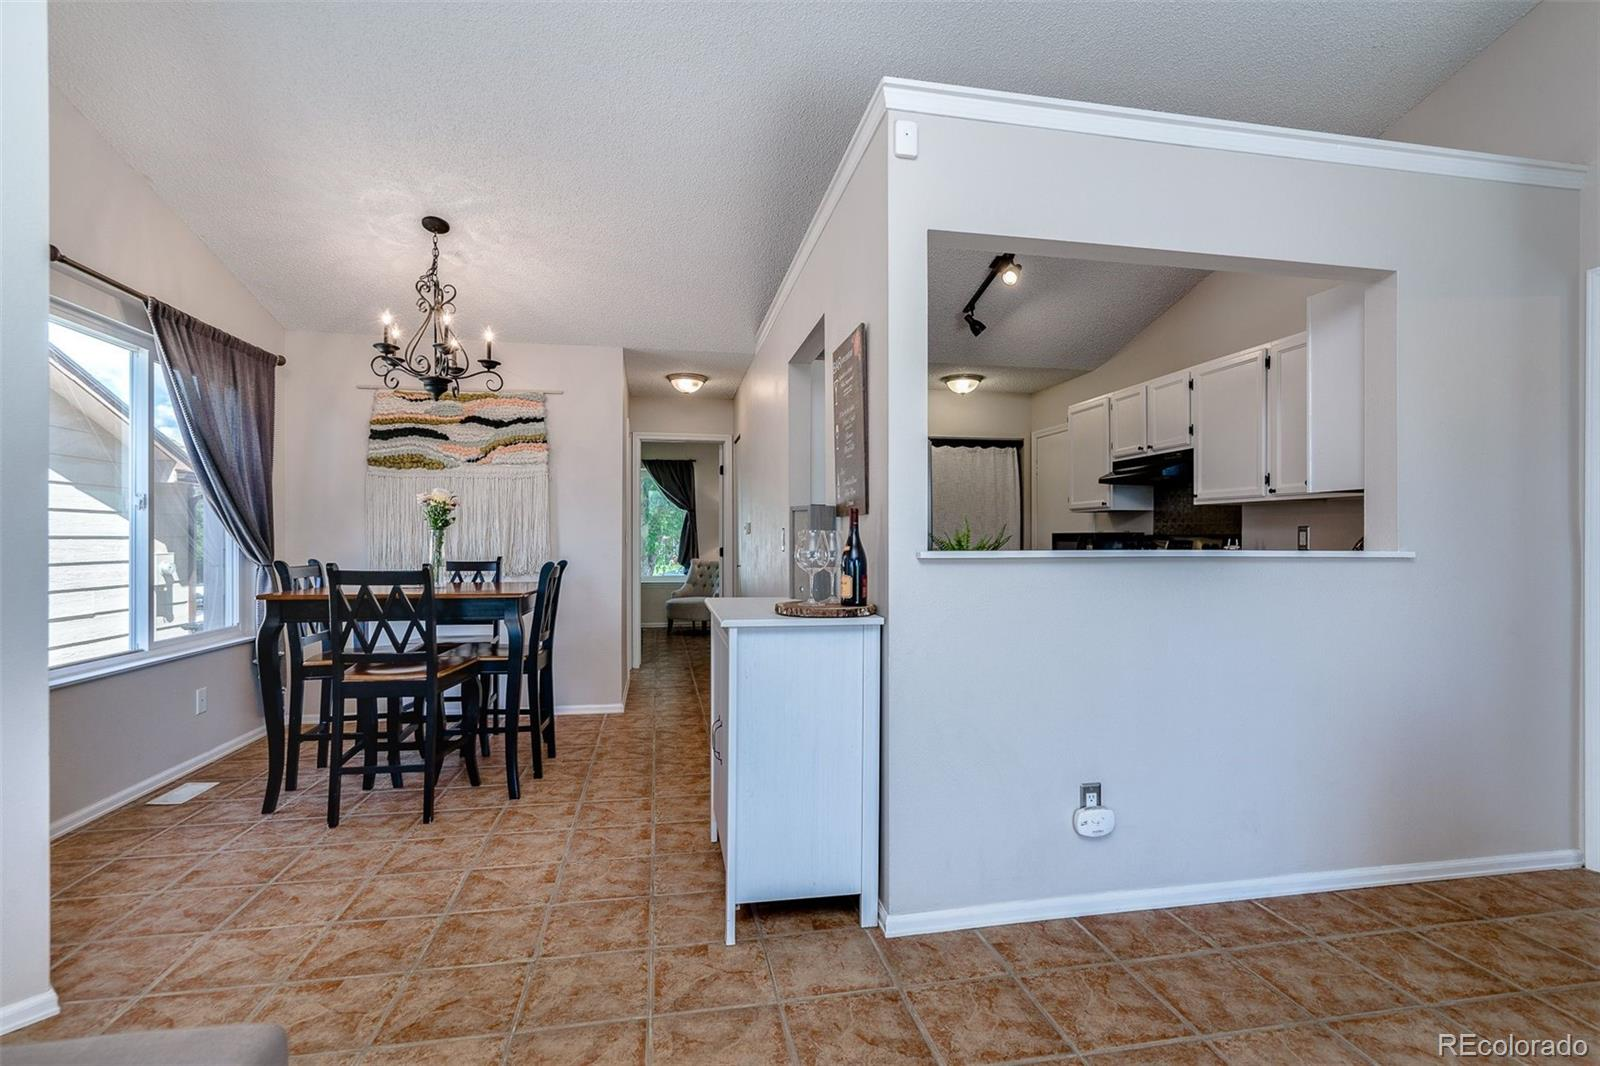 MLS# 3847207 - 18 - 6565 Mohican Drive, Colorado Springs, CO 80915